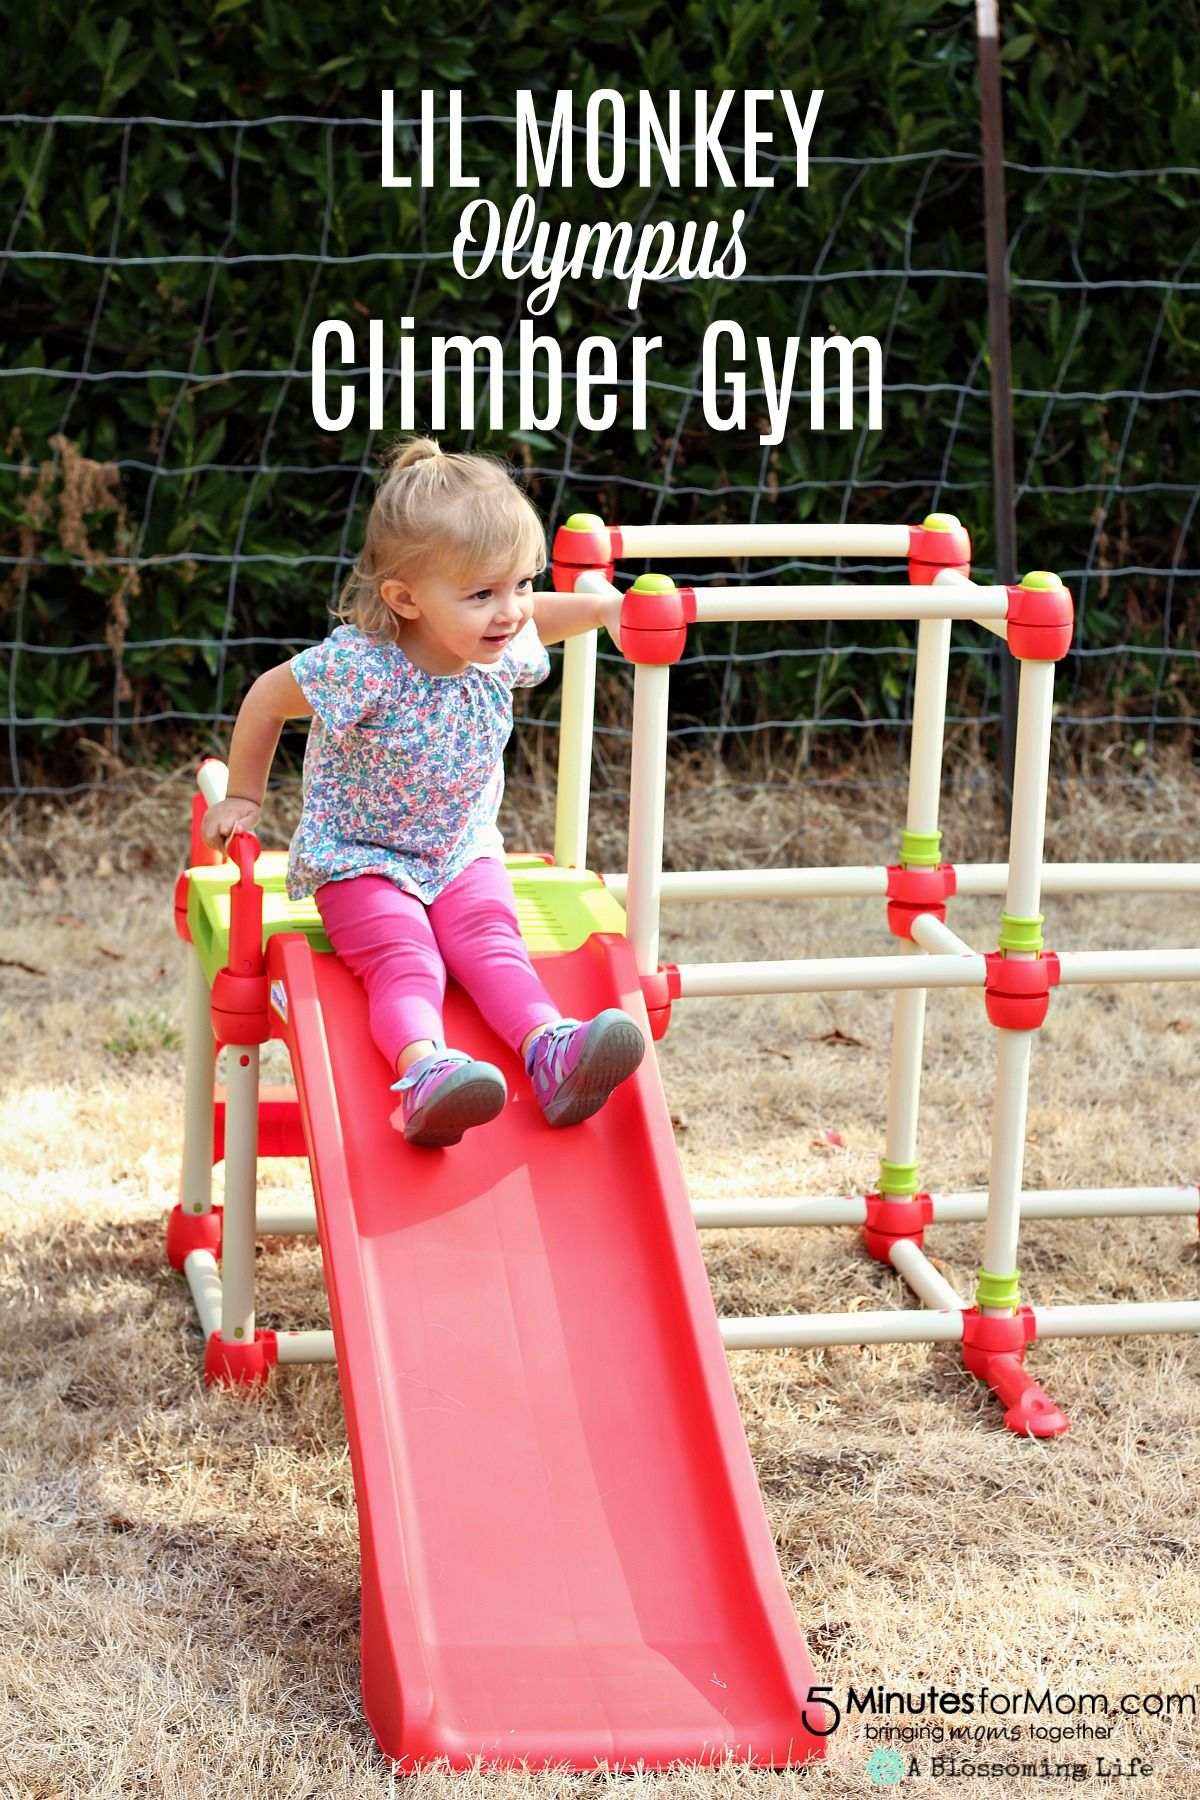 Lil Monkey Olympus Climber Gym Keep Your Little Kids Active And